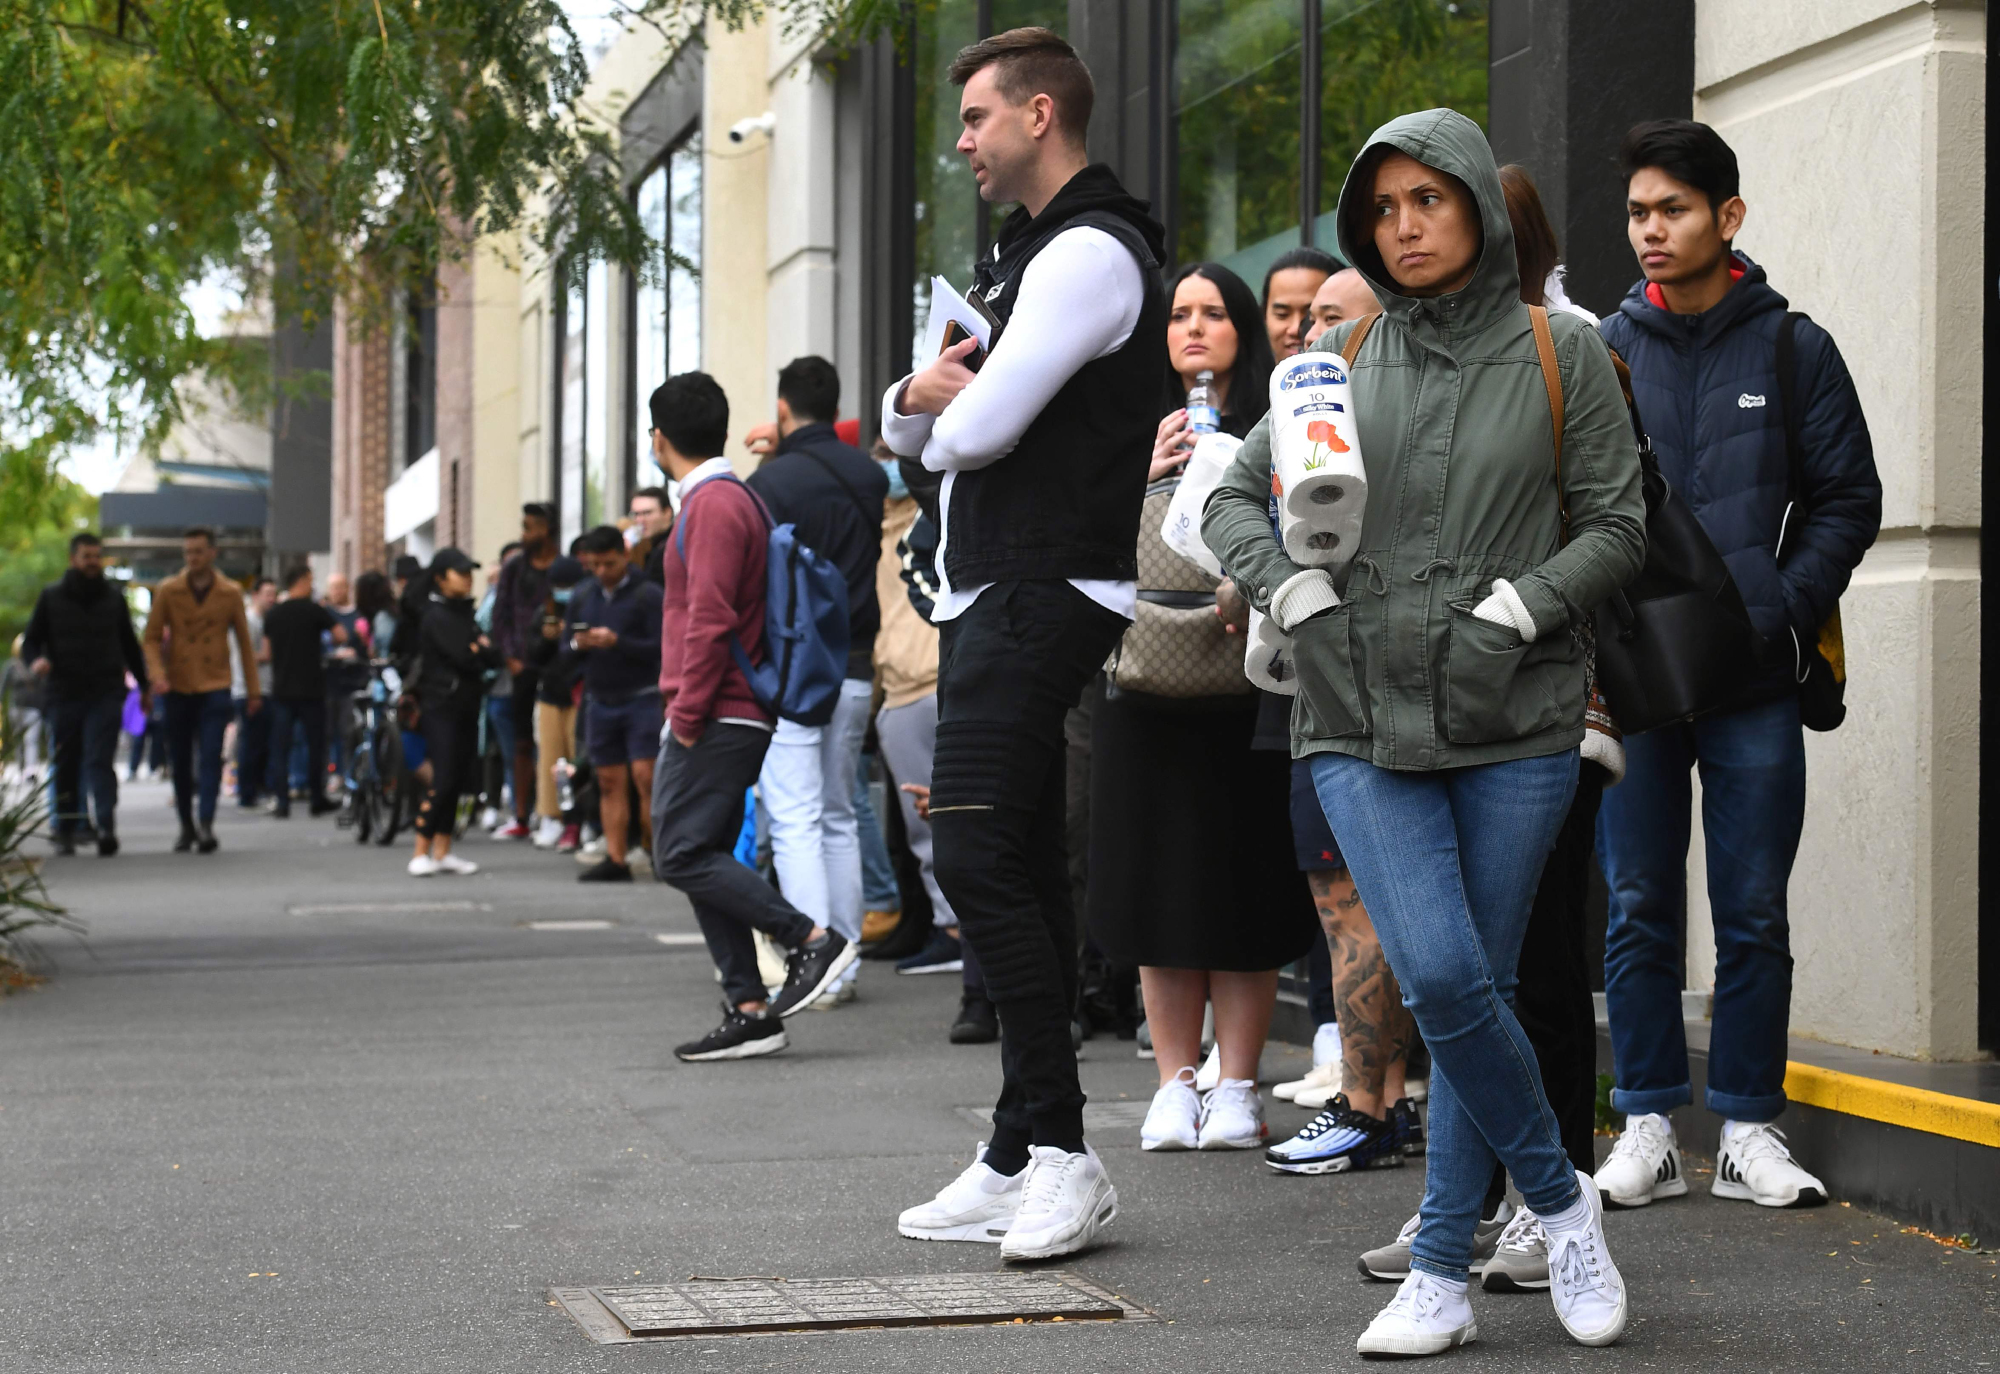 Hundreds of people line up outside a Centrelink government welfare center in Melbourne on March 23, when the forced closure of pubs, casinos, churches and gyms began across Australia. | AFP-JIJI